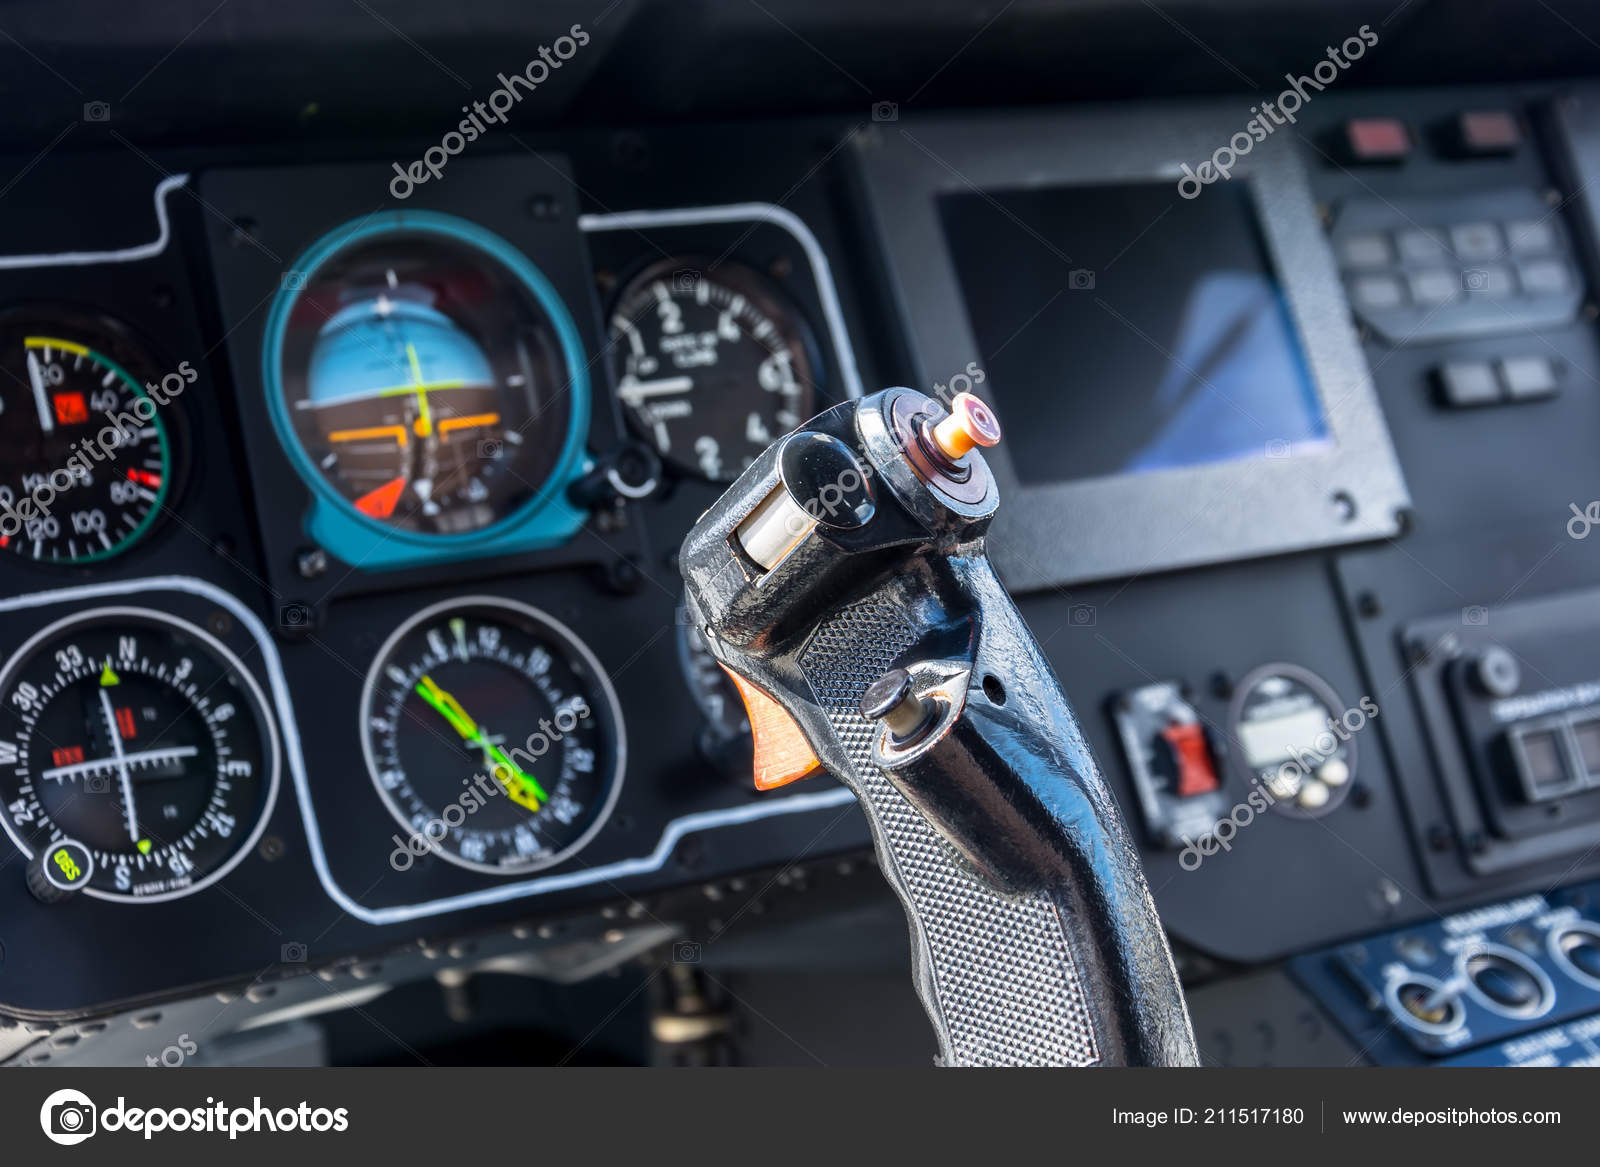 Airplane Cockpit View Steering Wheel Aircraft Pilot Control Cabin